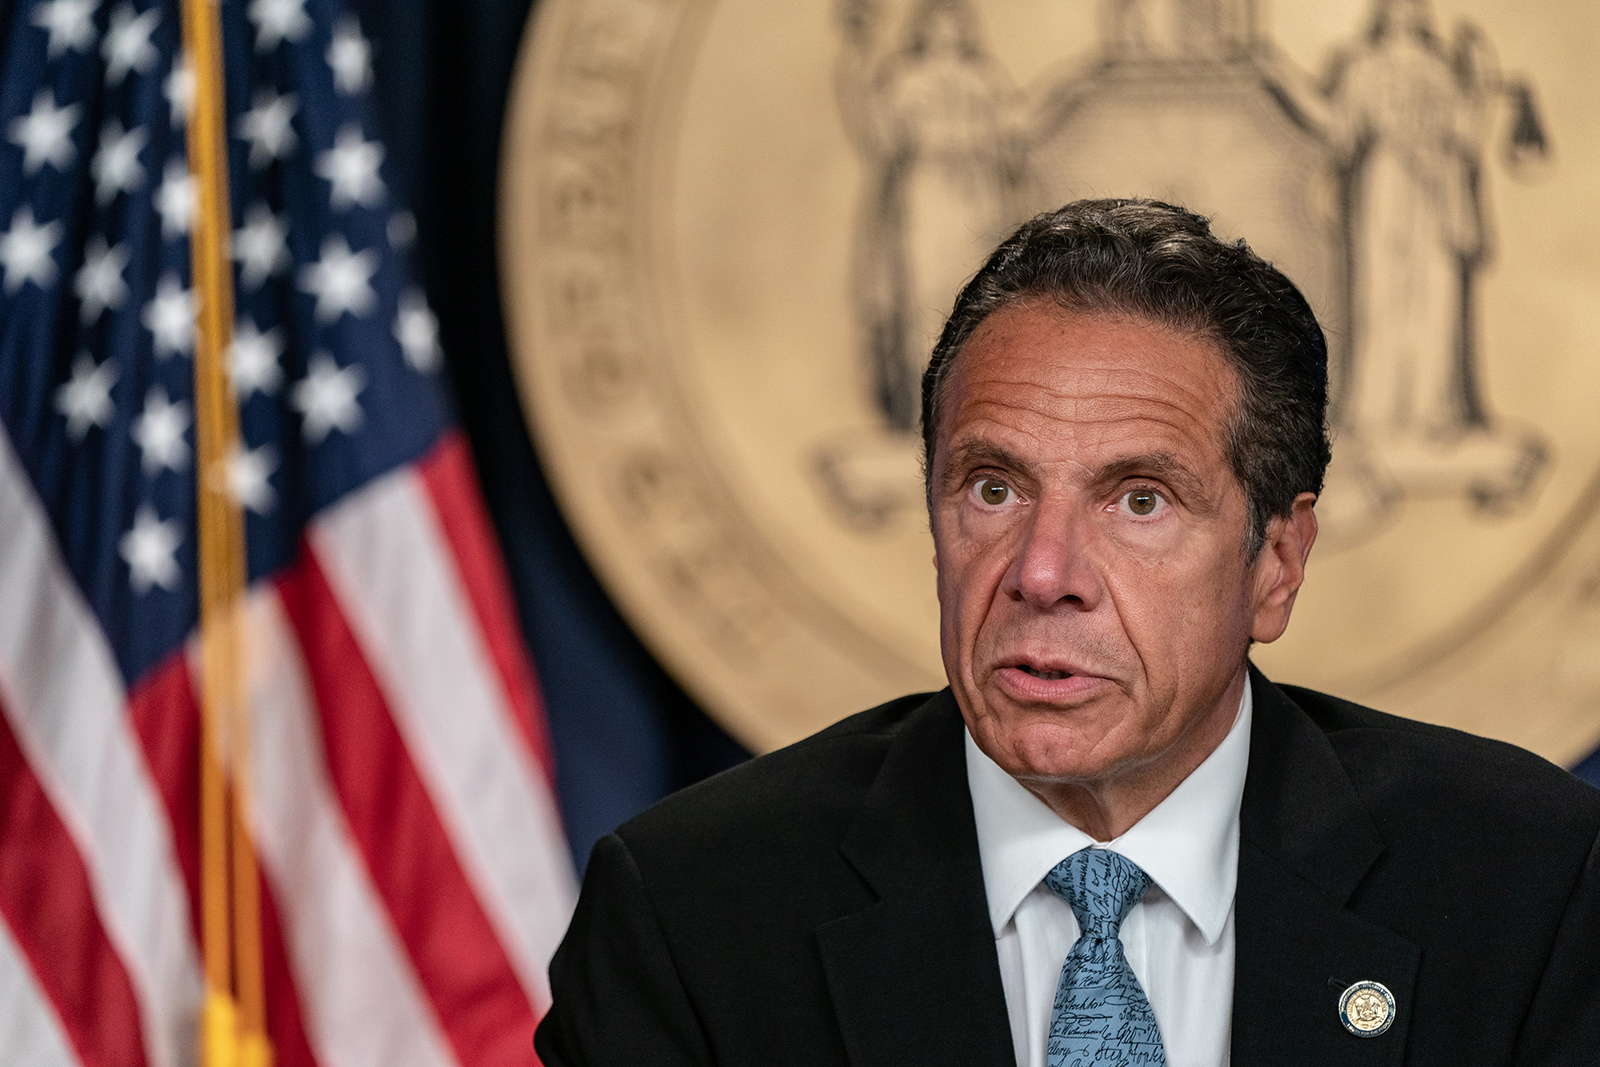 New York Gov. Andrew Cuomo speaks during the daily media briefing at the Office of the Governor of the State of New York on July 23, in New York City.